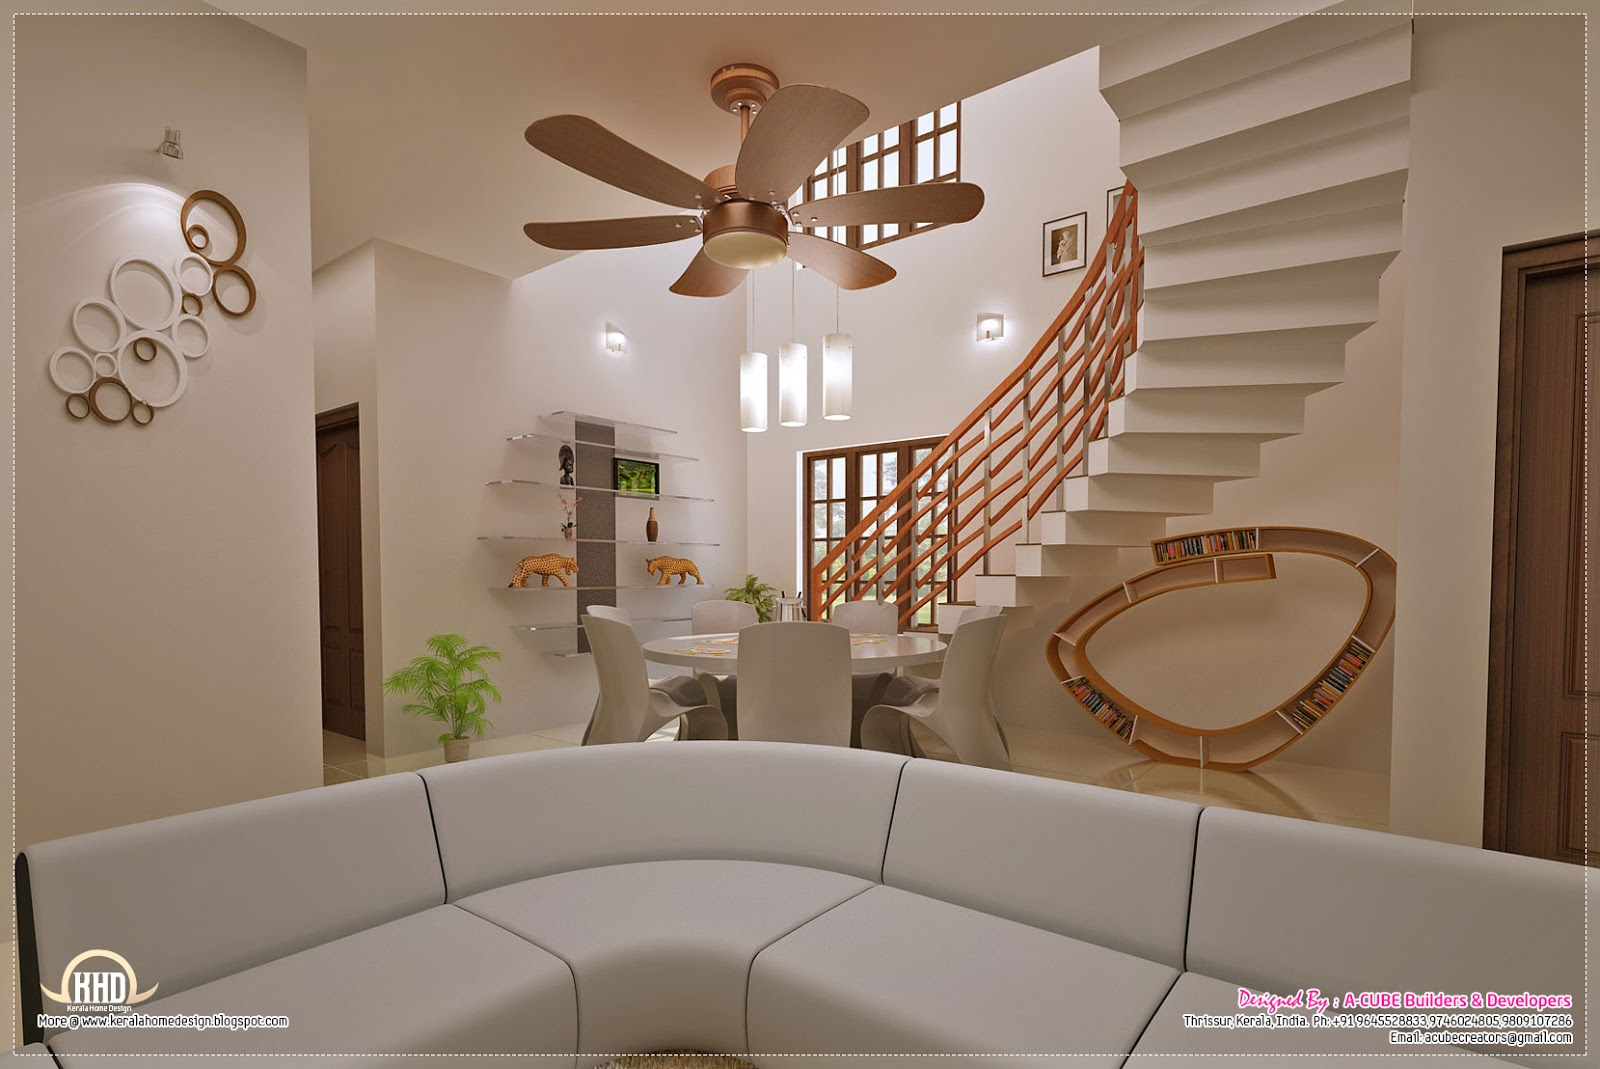 Awesome interior decoration ideas home kerala plans Home interior ideas